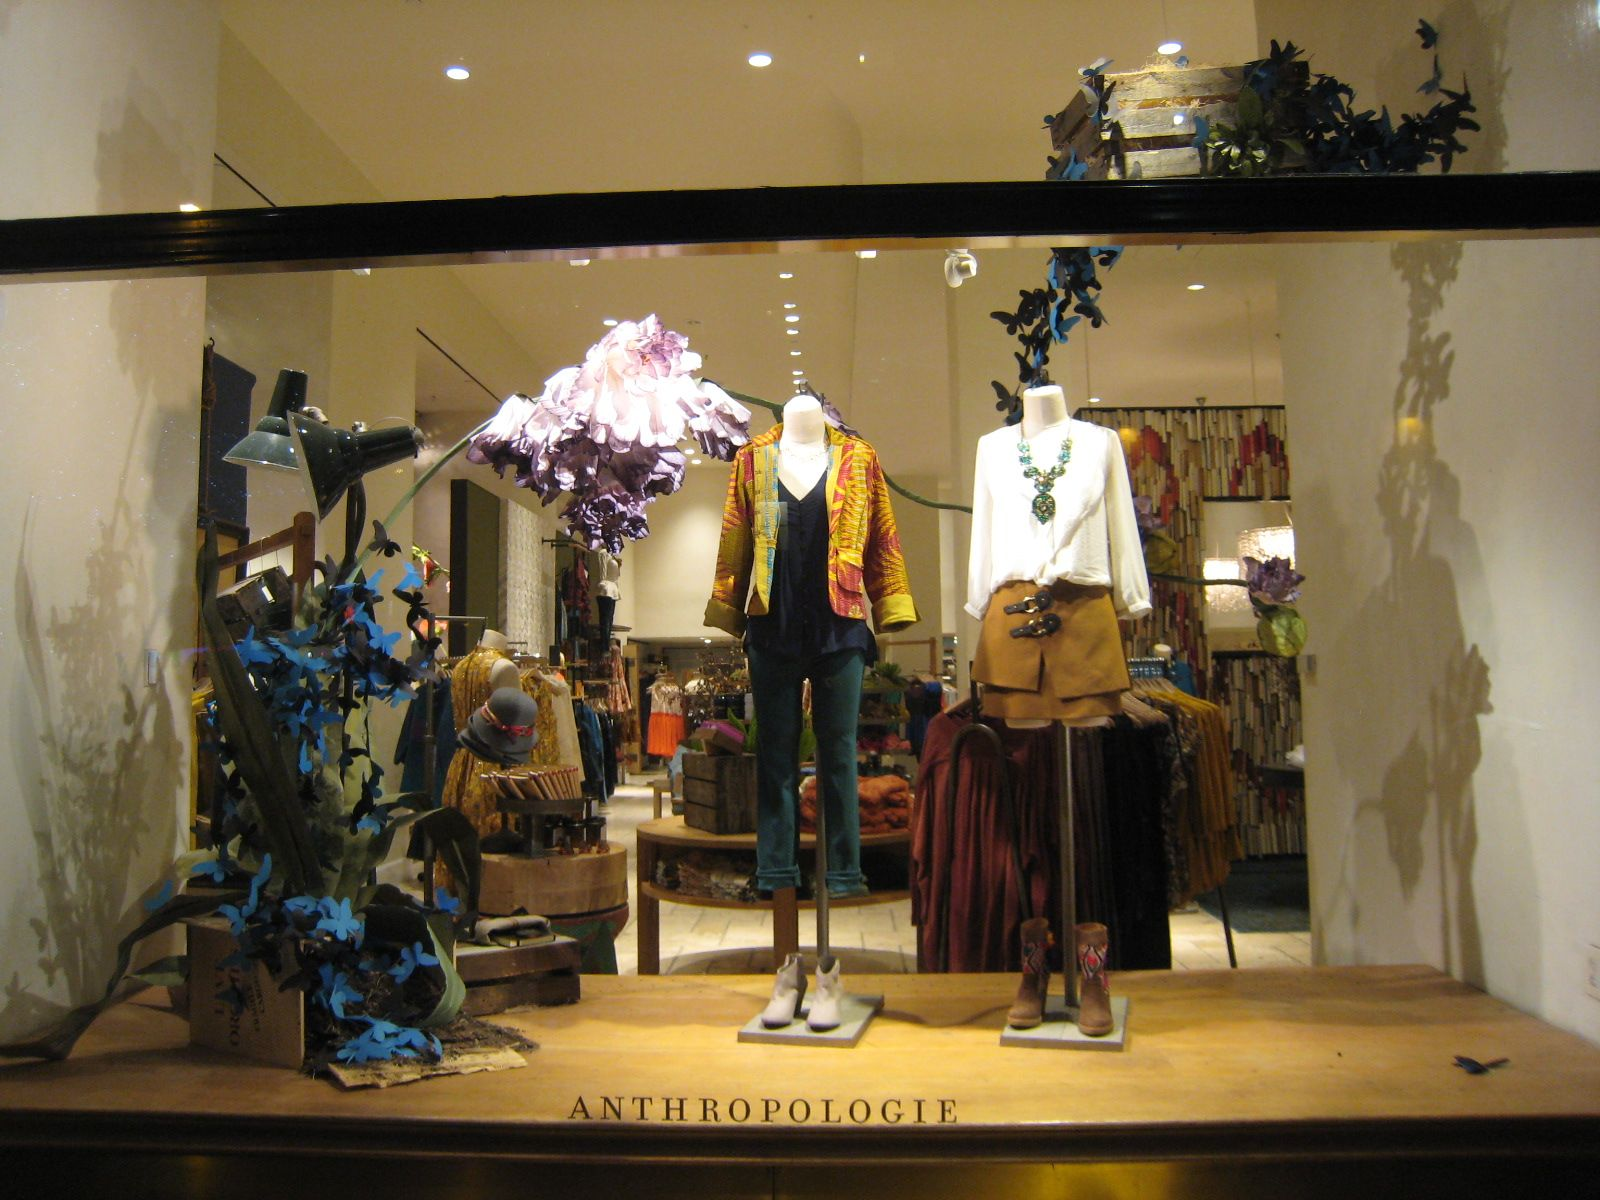 It's a coordinated effort that includes marketing, merchandising, store design and visual merchandising. As an essential component of the fashion business, visual merchandising is the tool or language that retailers use to communicate with the customer.